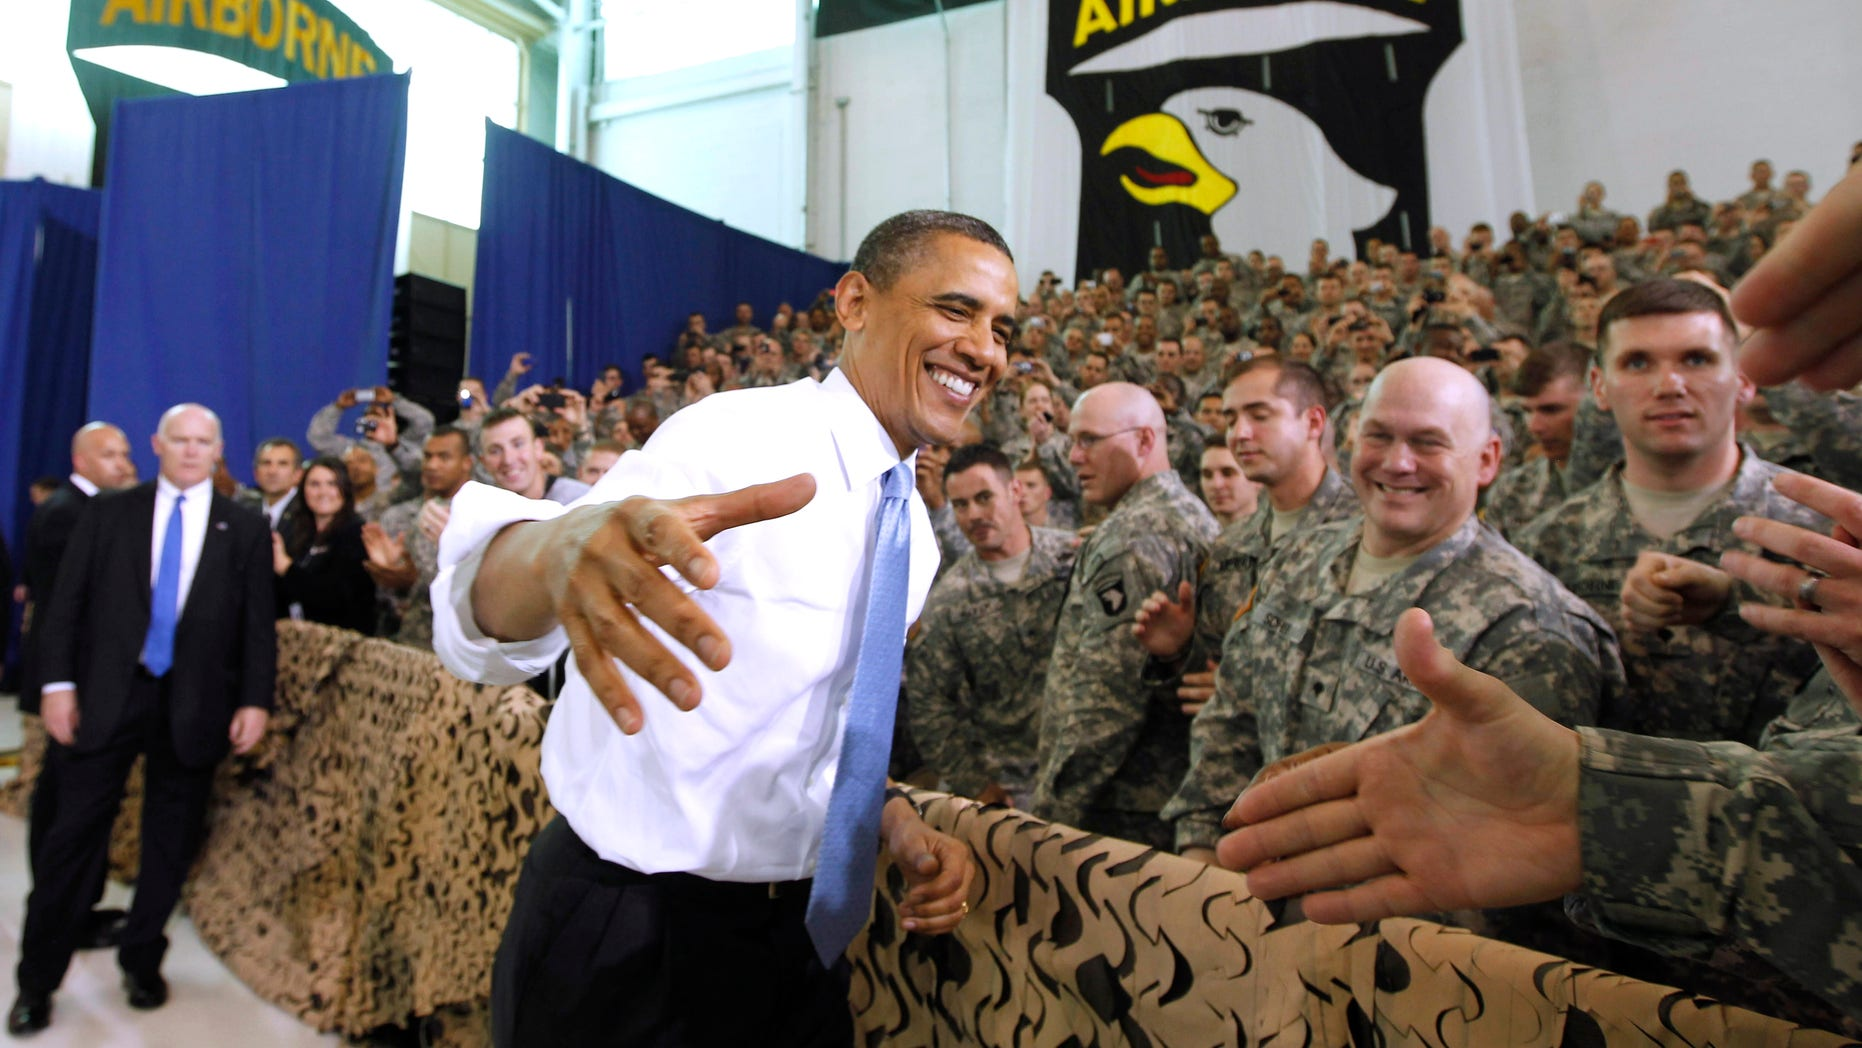 President Obama greets military personnel prior to addressing troops, Friday, May 6, 2011, at Fort Campbell, Ky. (AP)